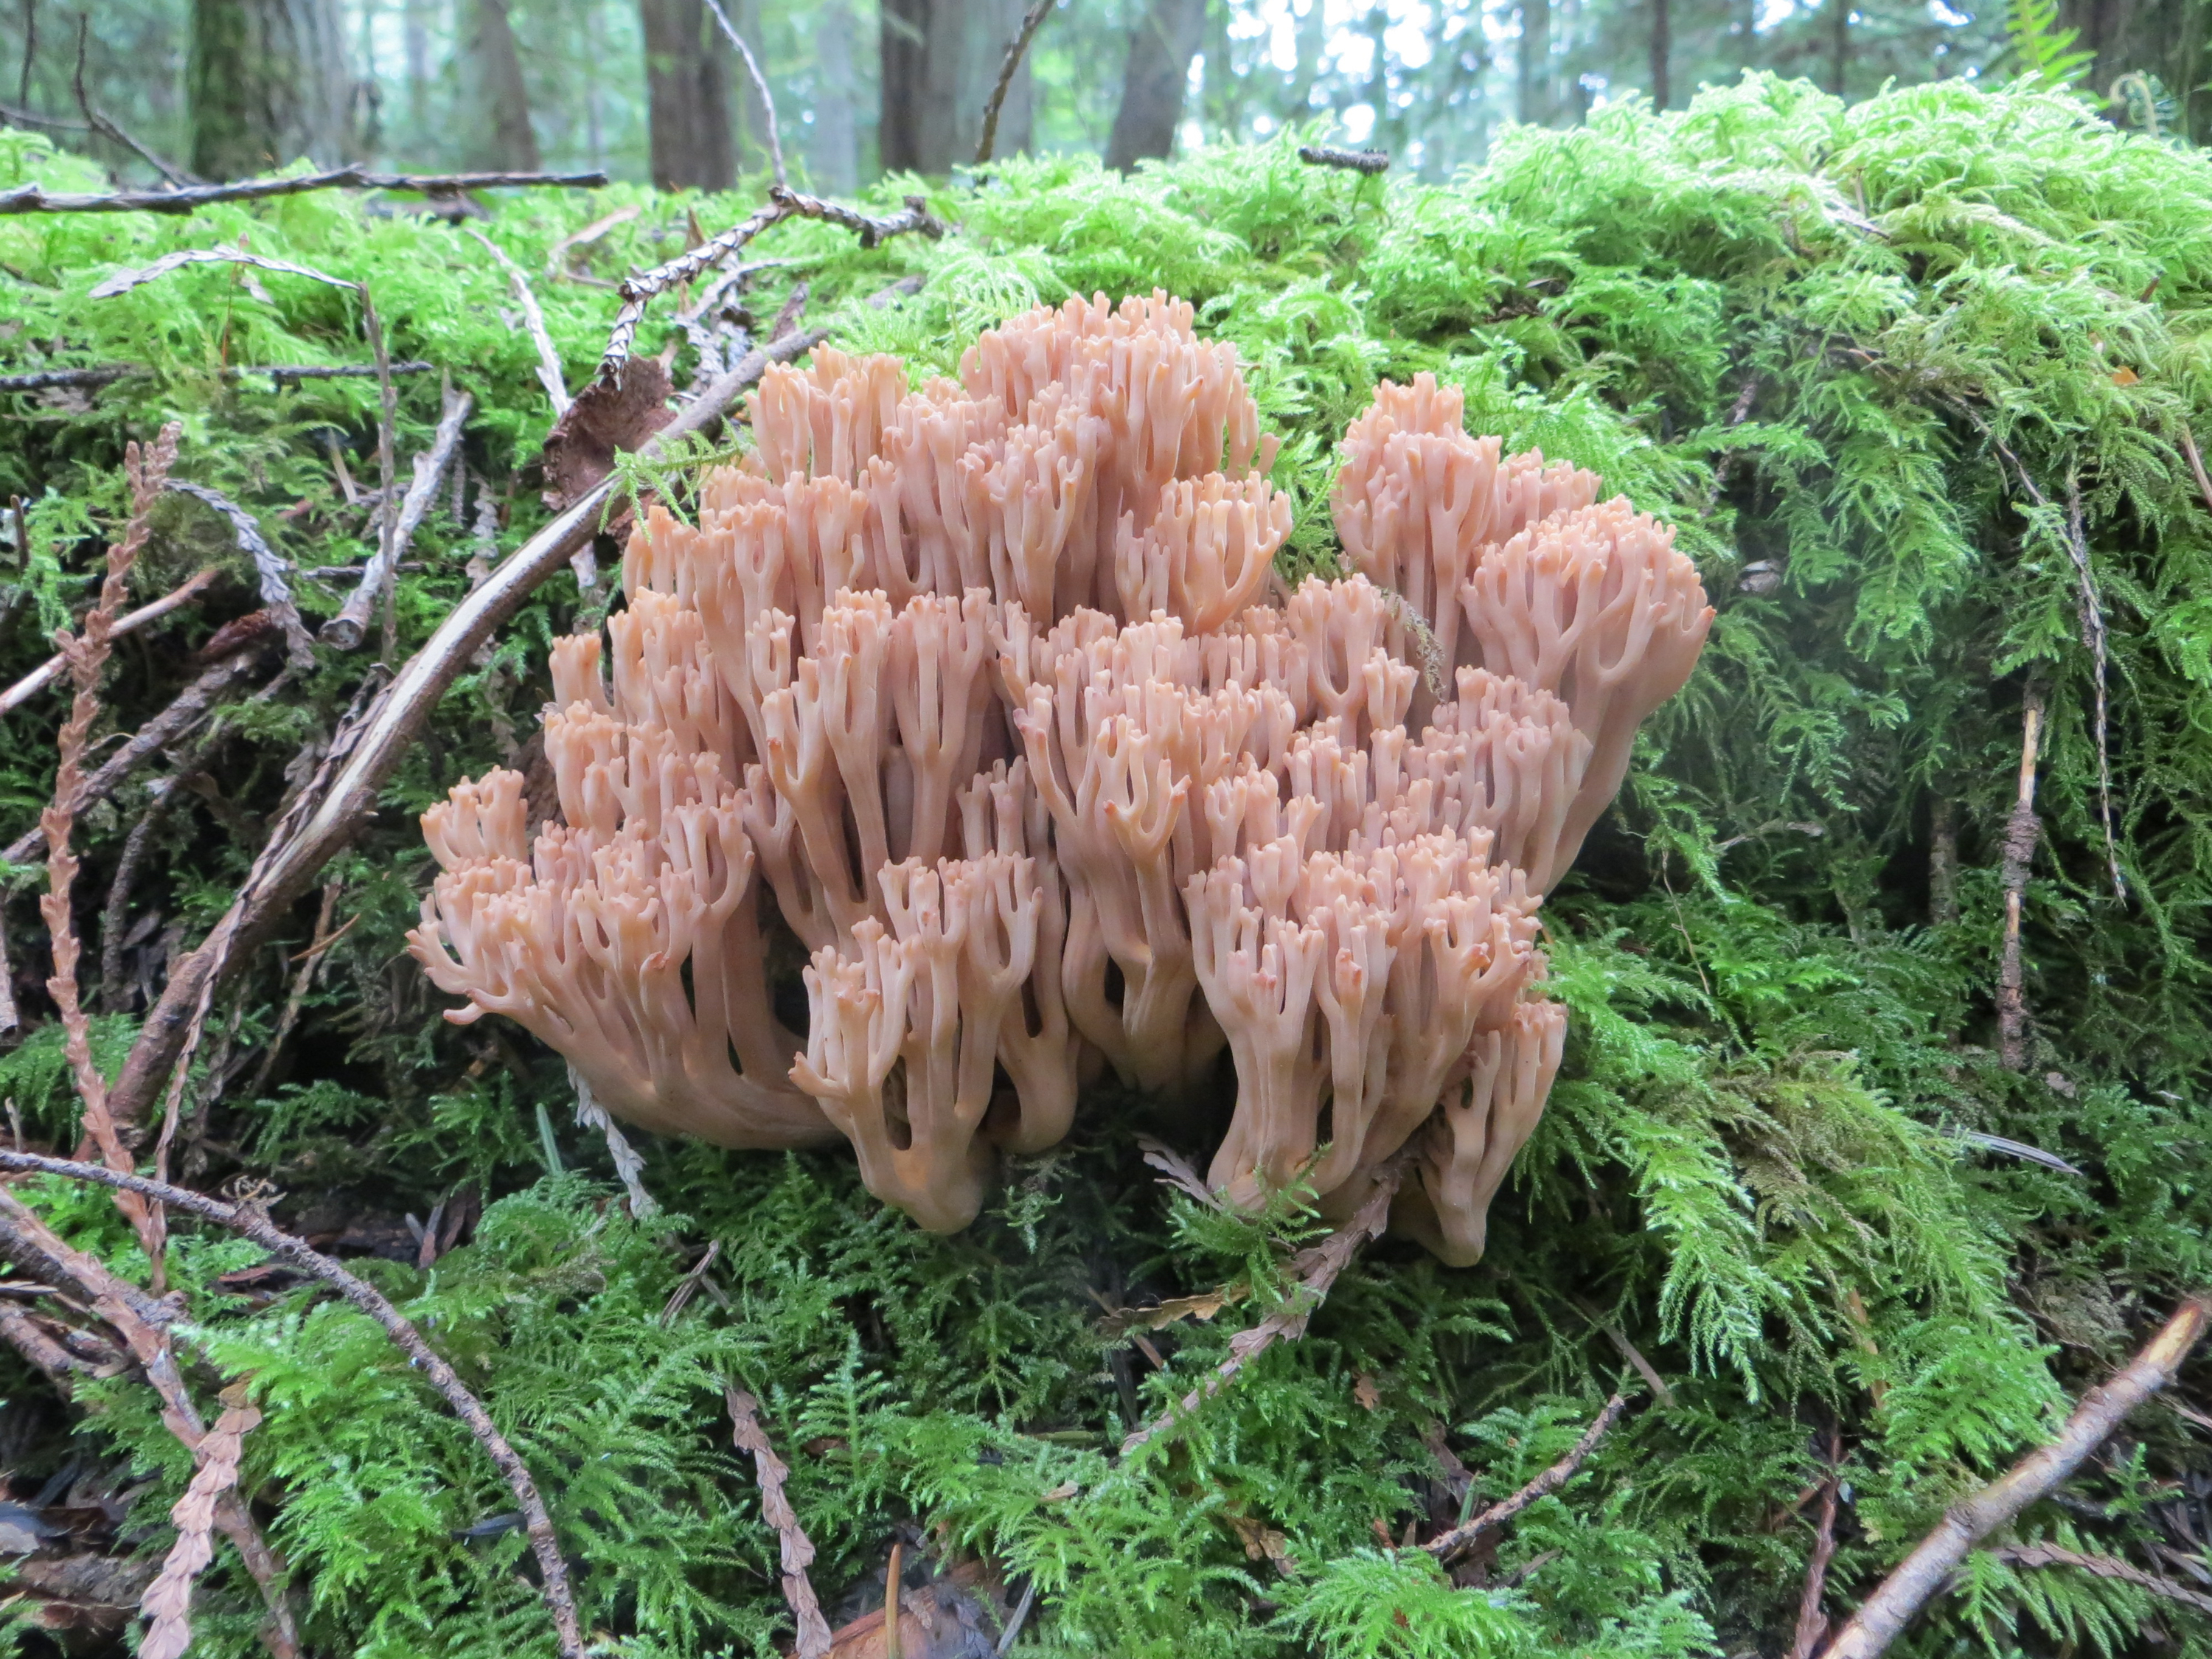 Coral mushrooms. <em>(Lawrence Millman)</em>